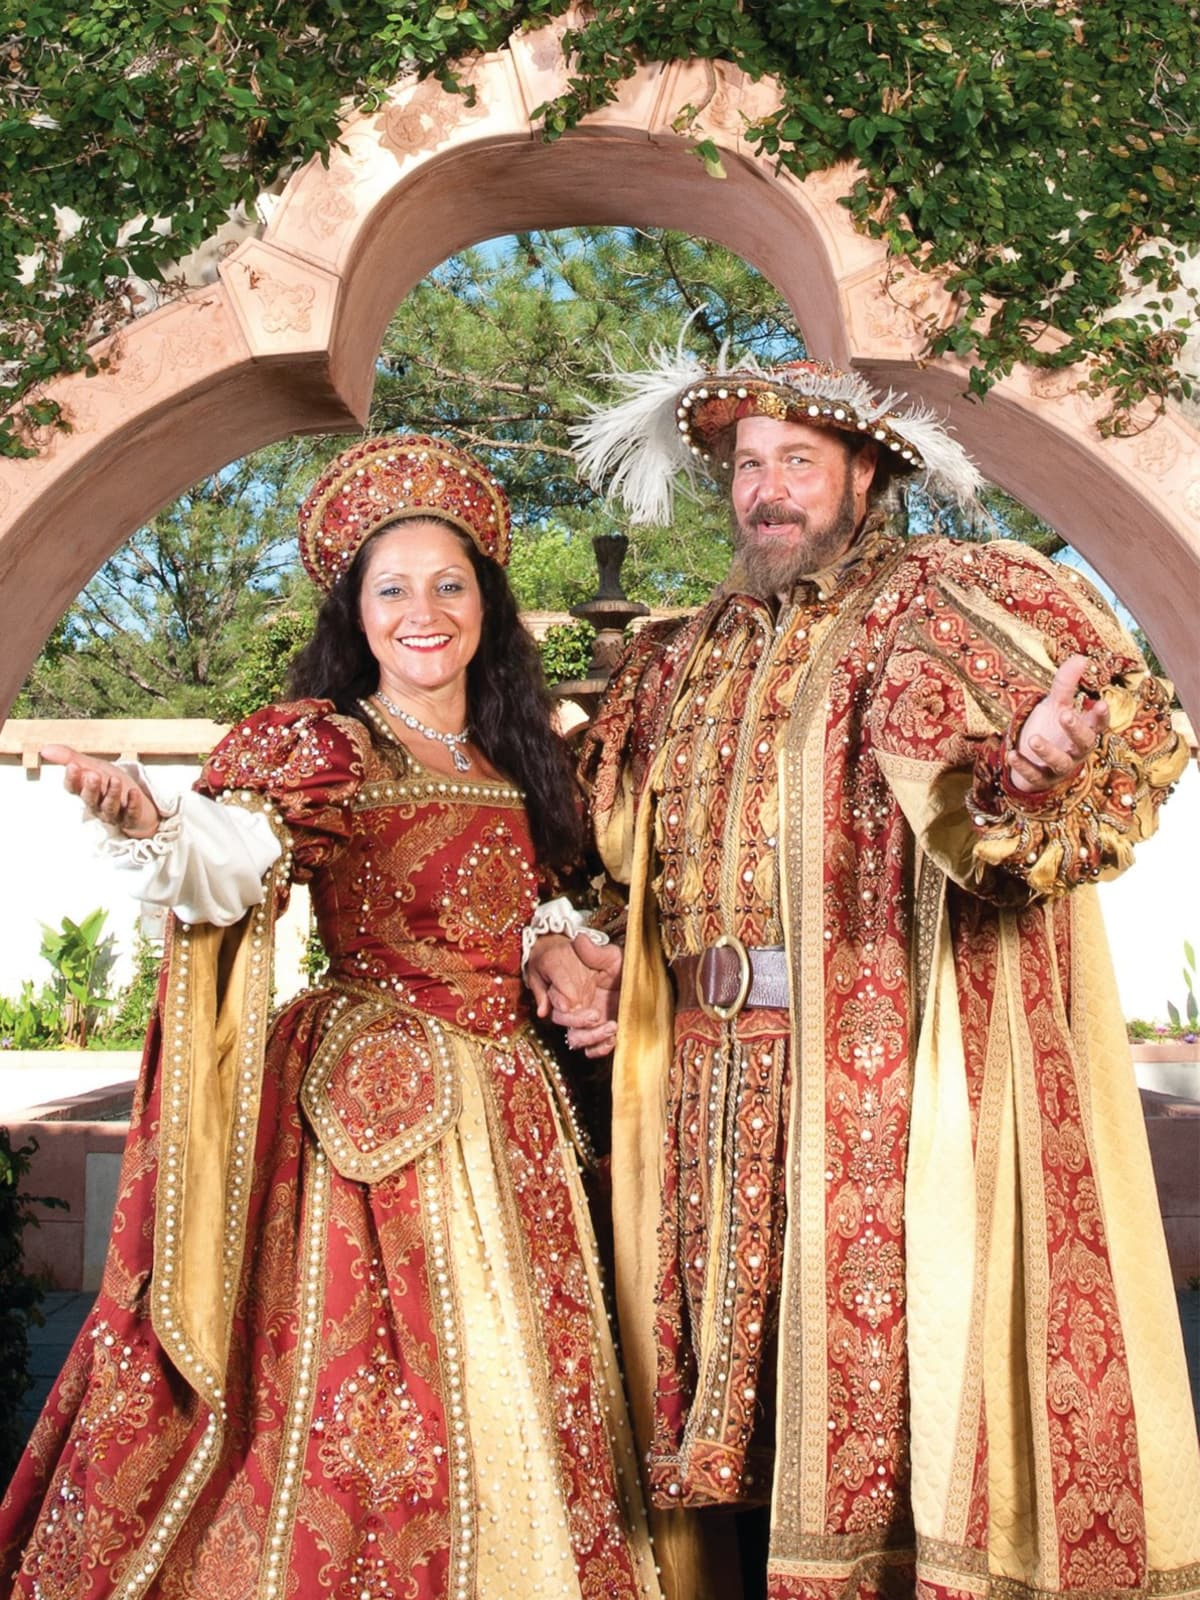 Texas Renaissance Festival king and queen